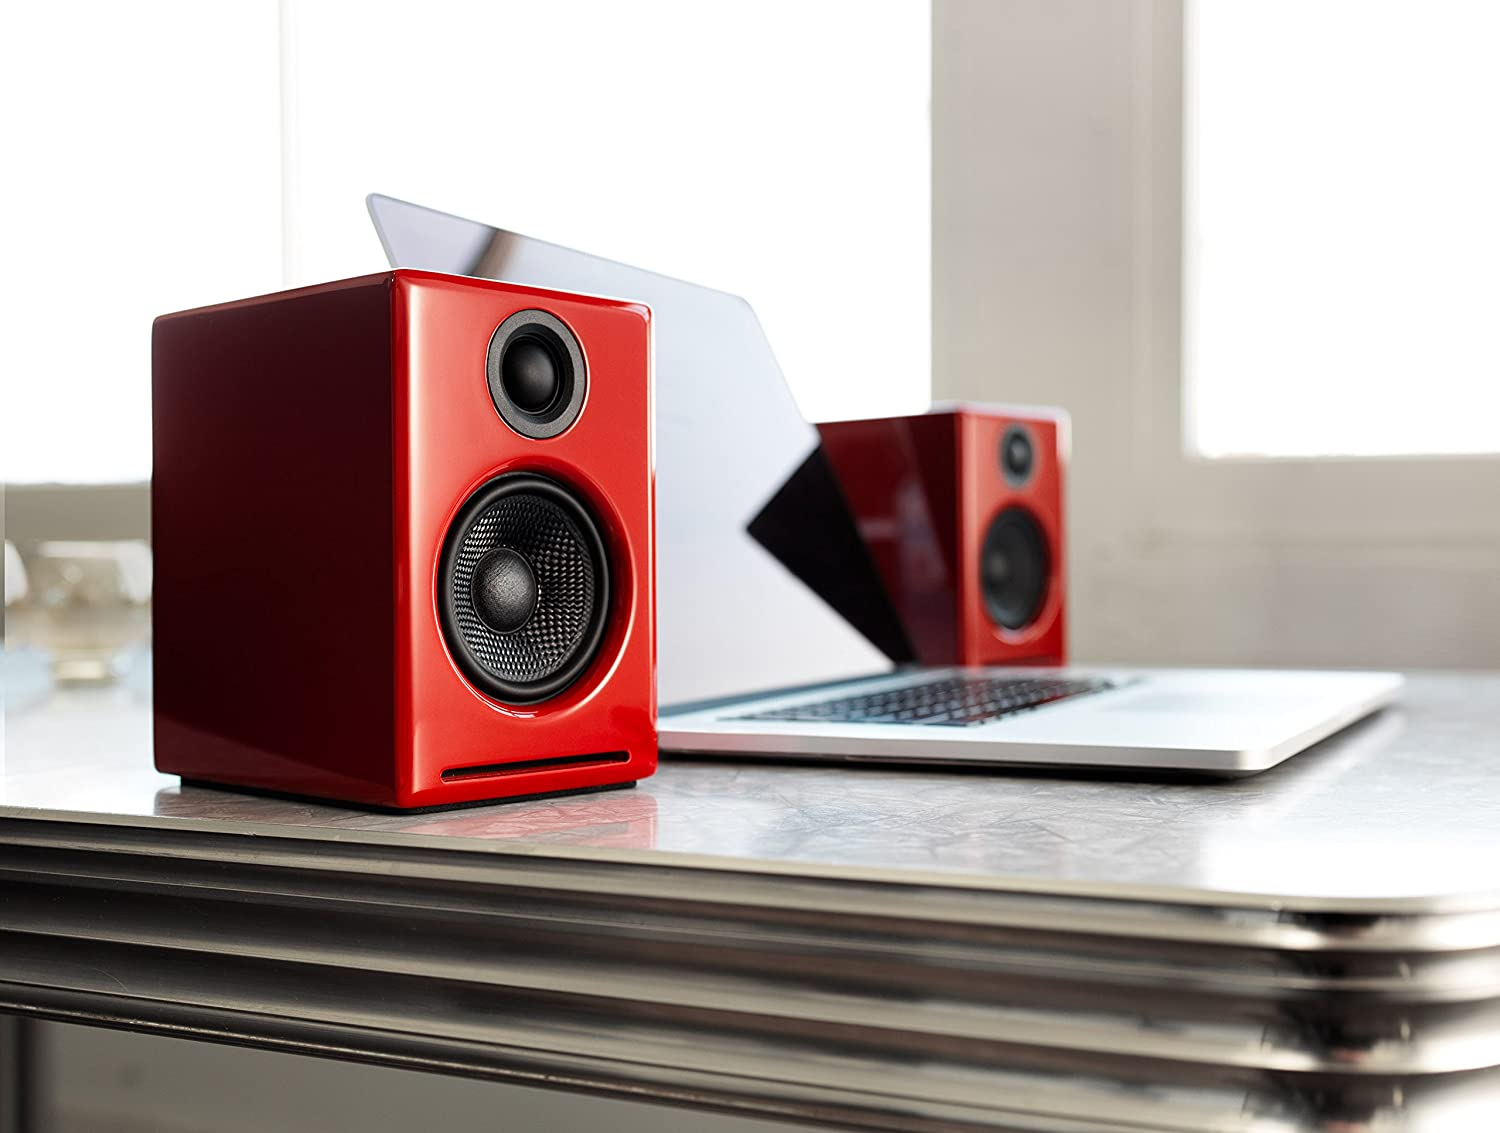 Bluetooth aptX Codec Audioengine A2+ Wireless 60W Powered Desktop Speakers Red Built-in 16Bit DAC and Amplifier